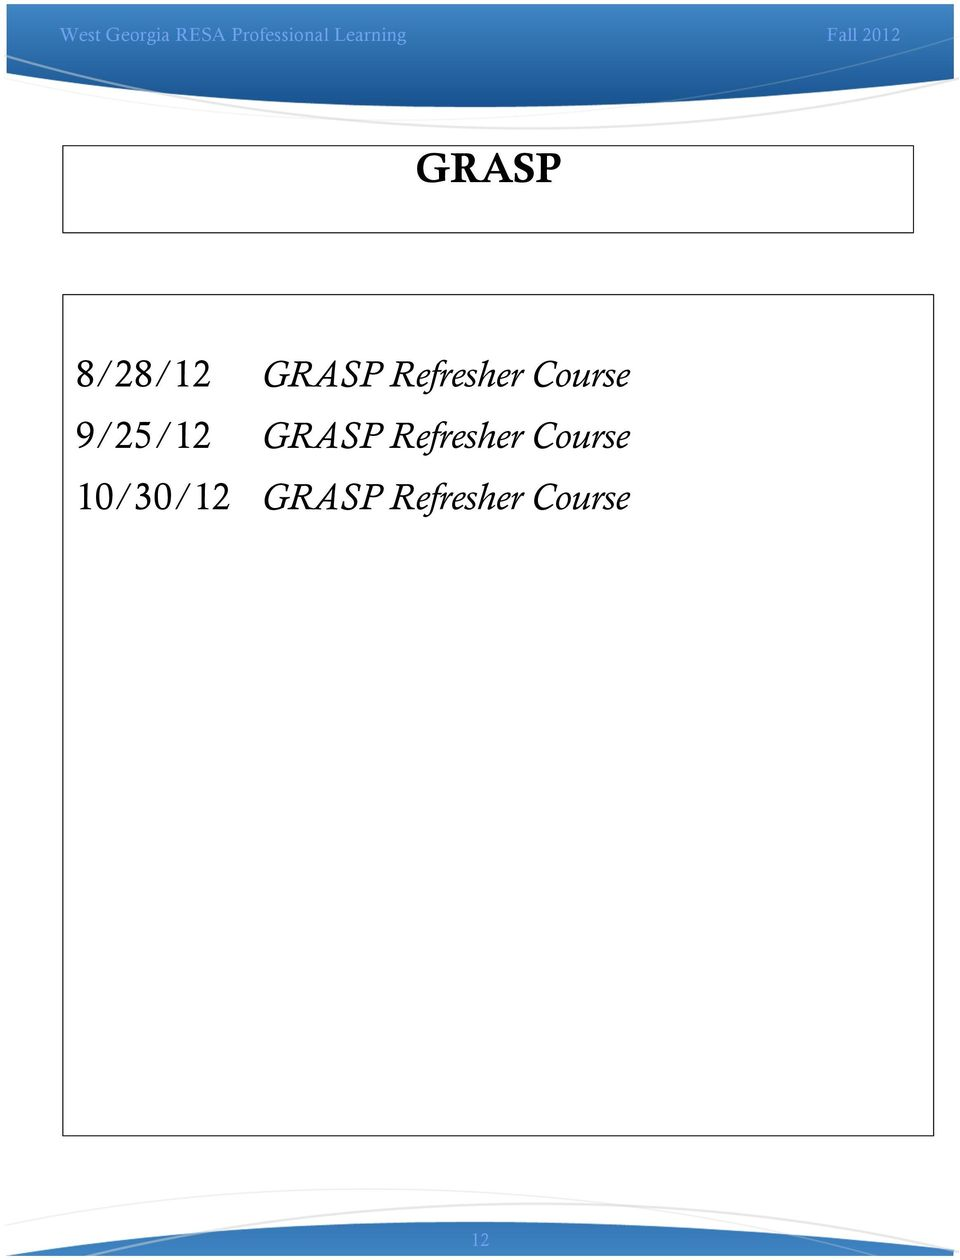 GRASP Refresher Course